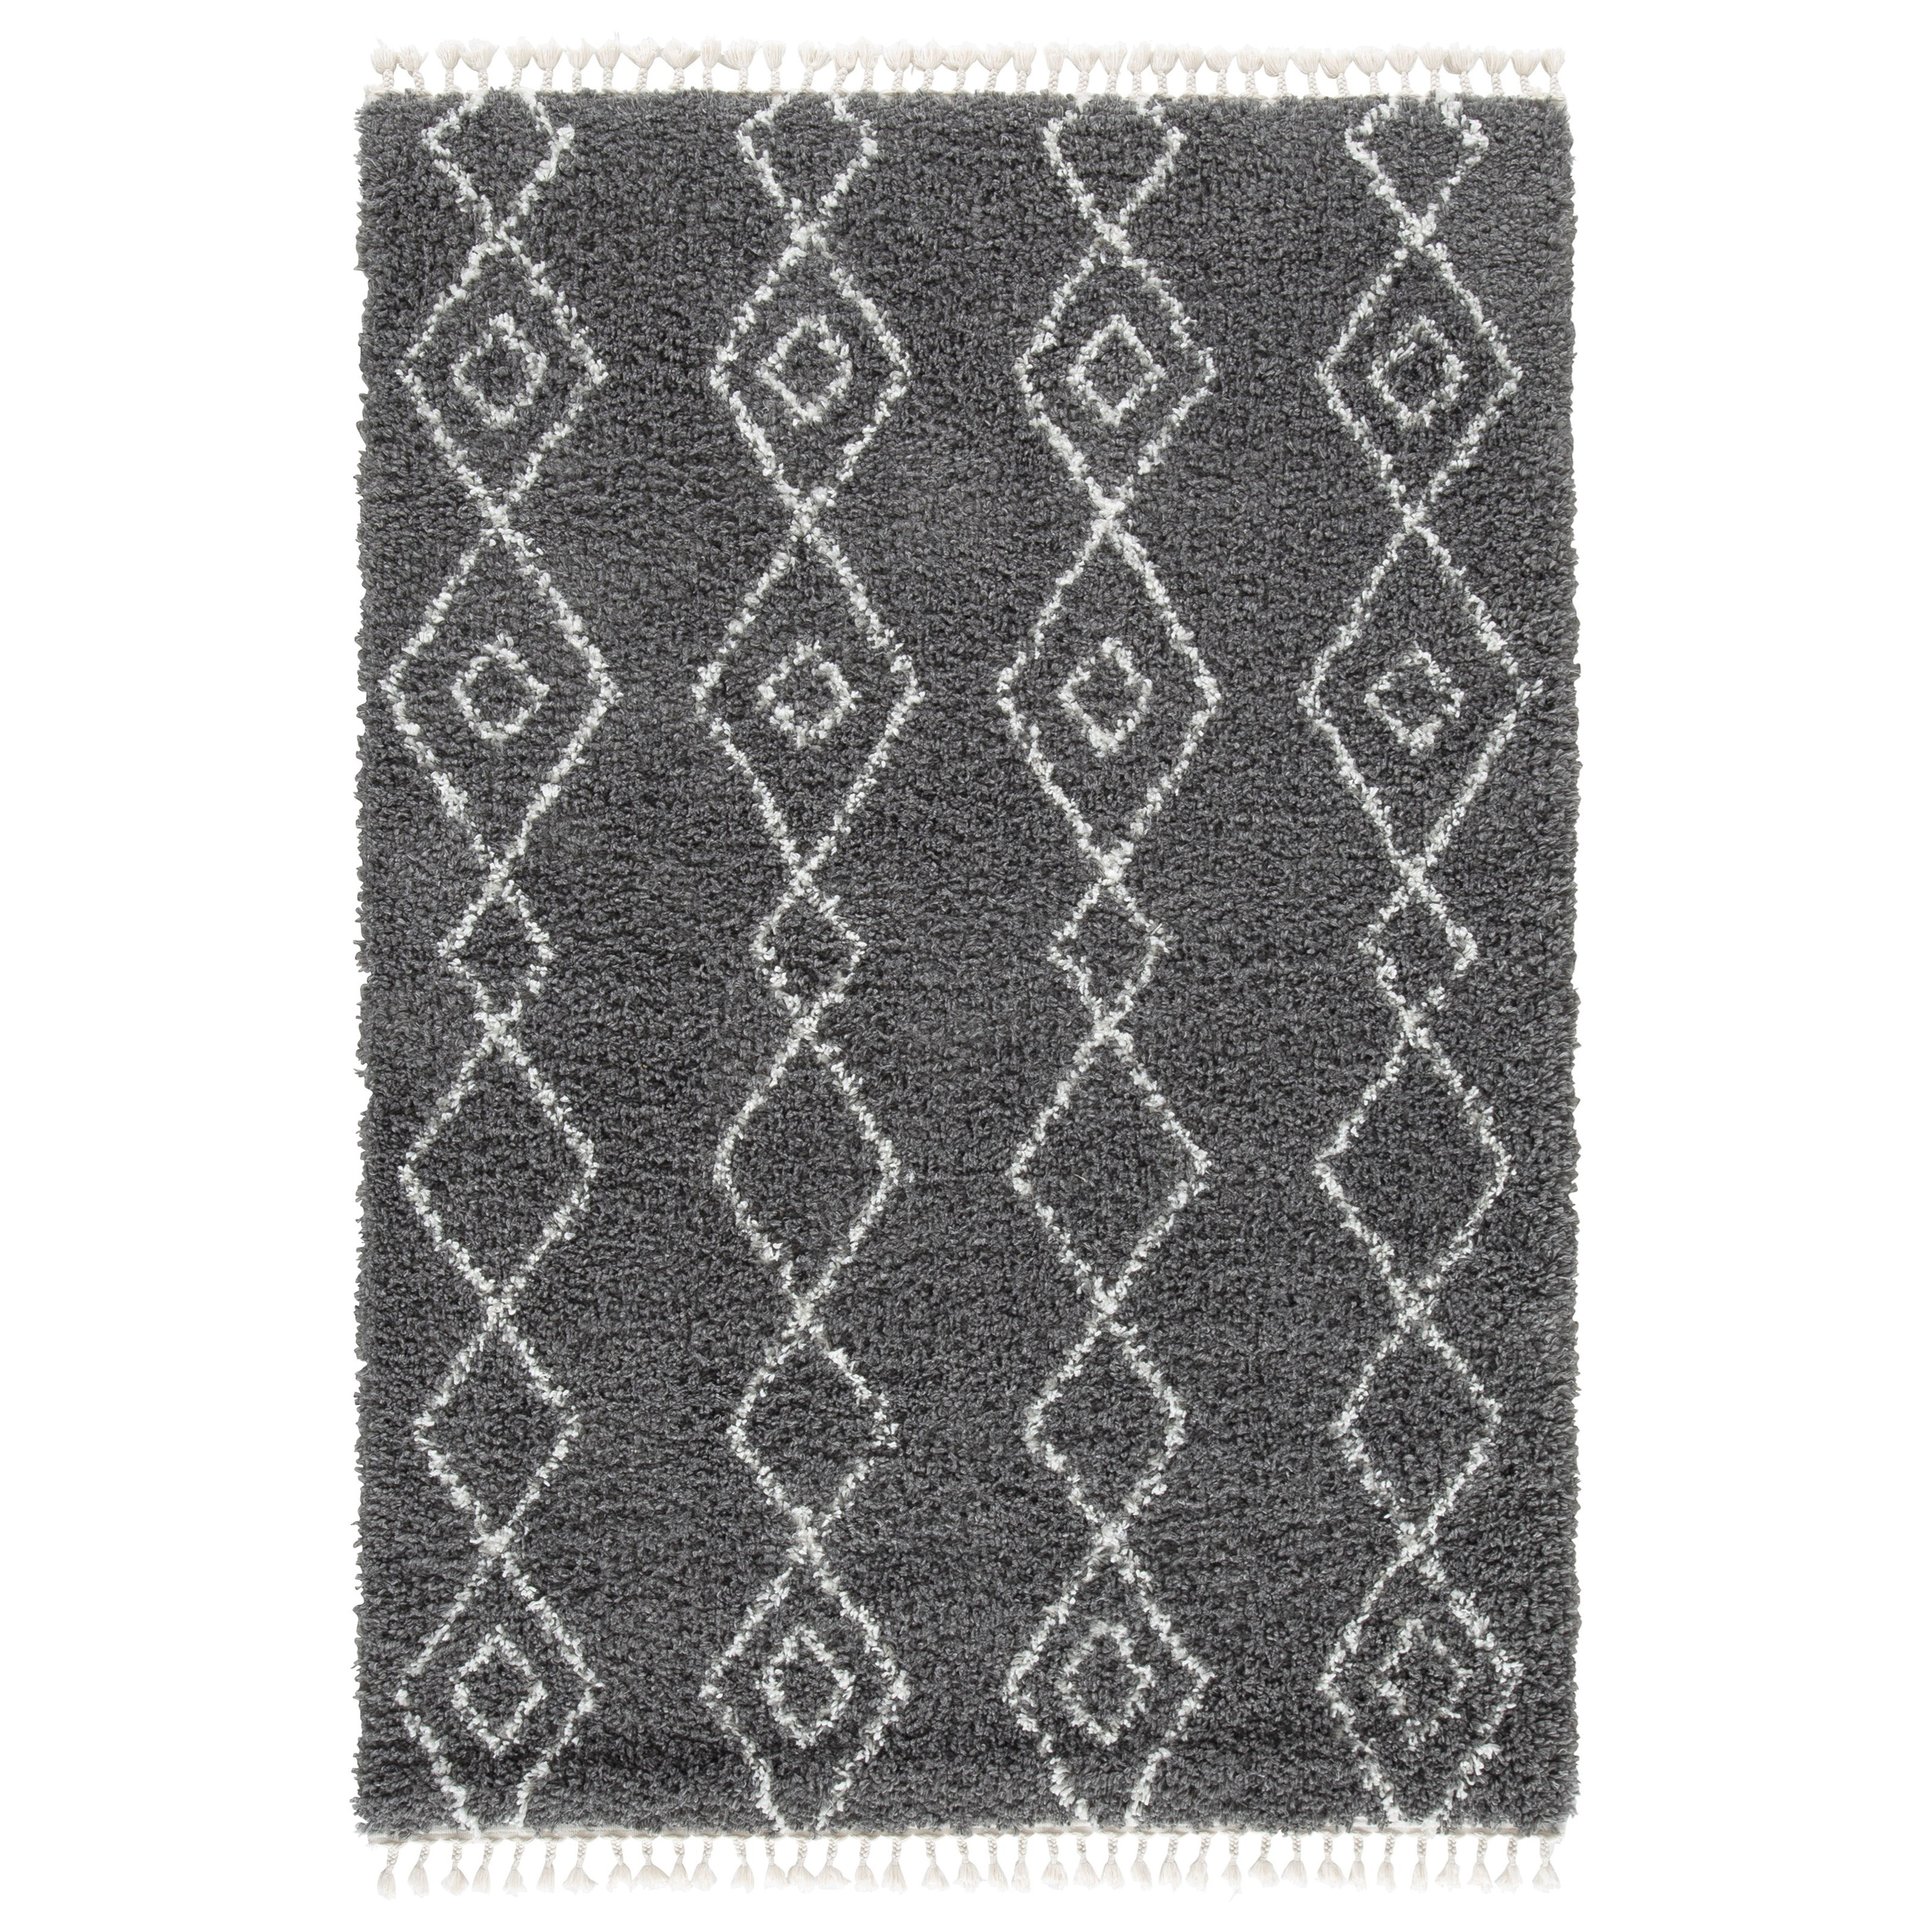 Casual Area Rugs Maysel Gray/Cream Medium Rug by Signature Design by Ashley at Northeast Factory Direct